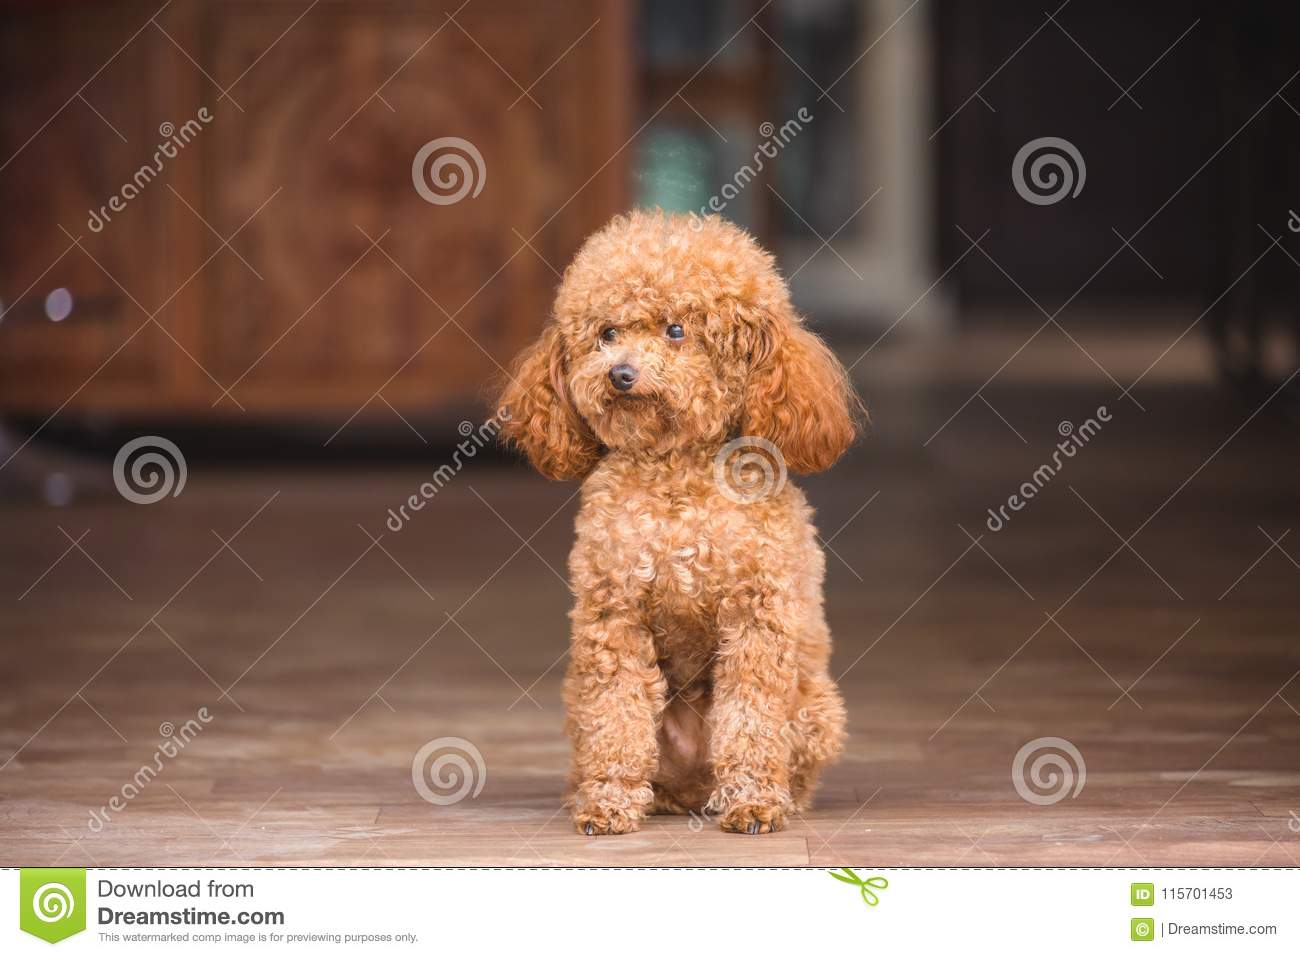 Cute toy poodle standing inside house